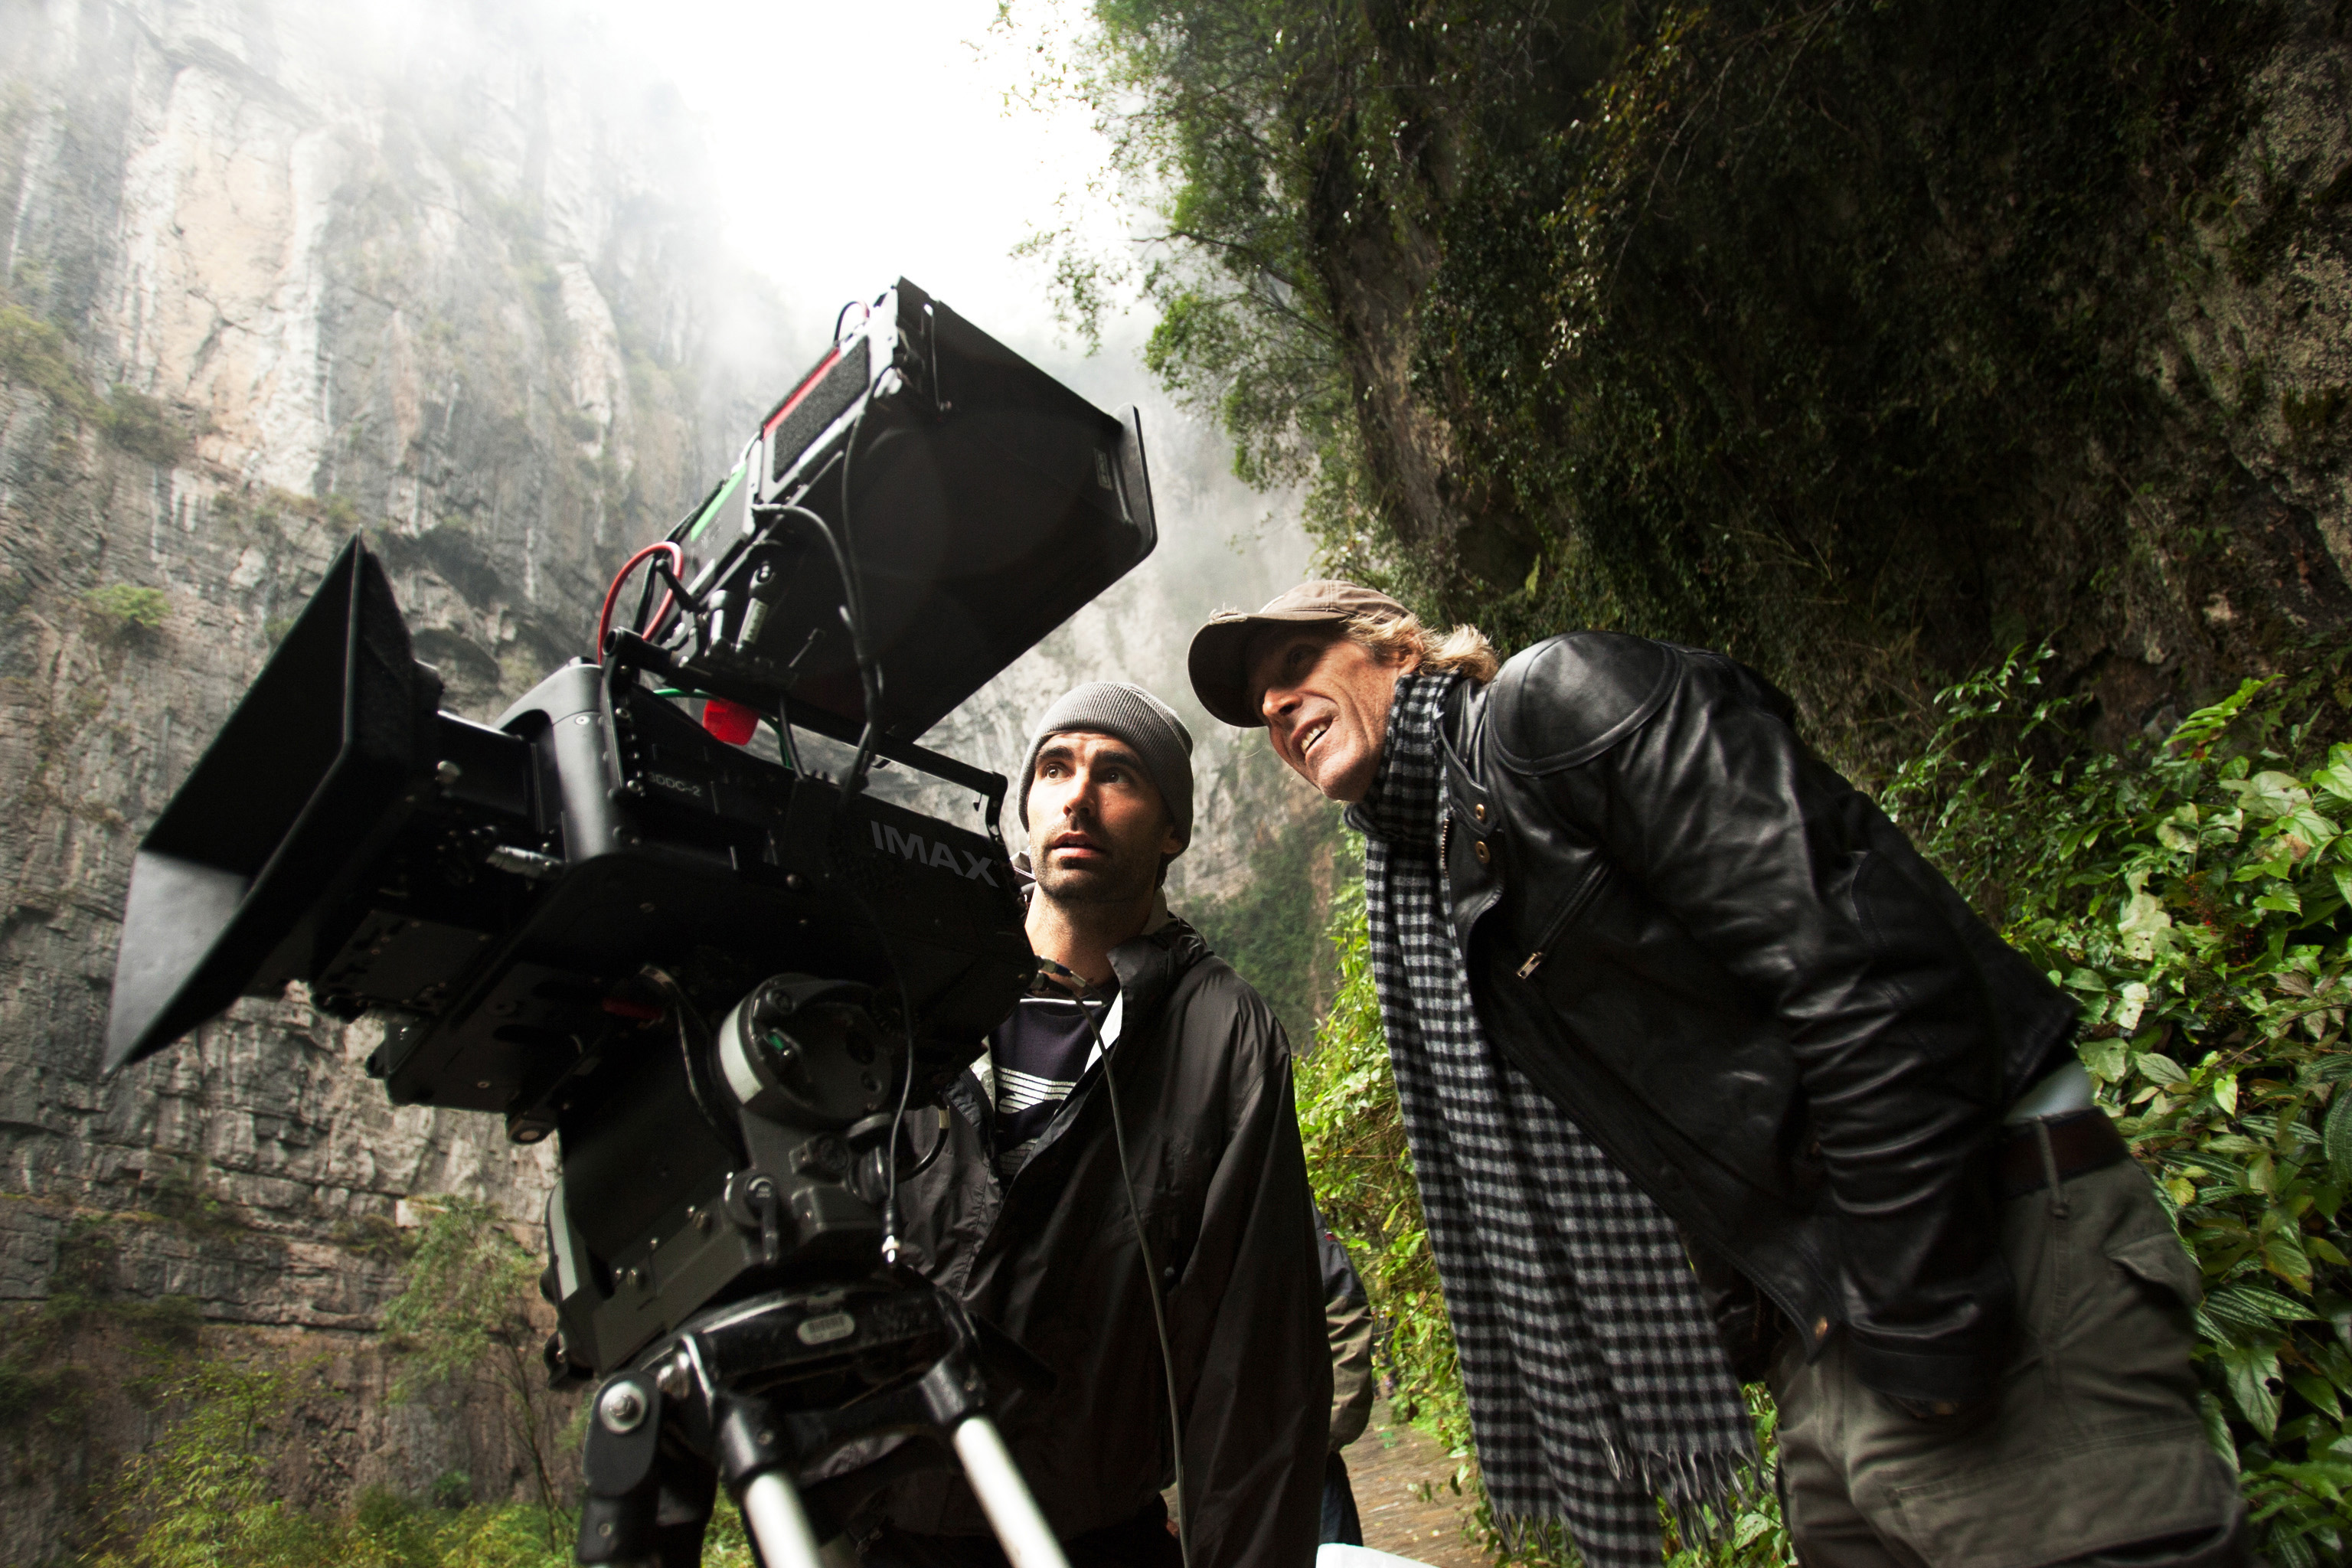 New IMAX® 3D Digital Camera Makes a Big Screen Debut in Transformers: Age of Extinction